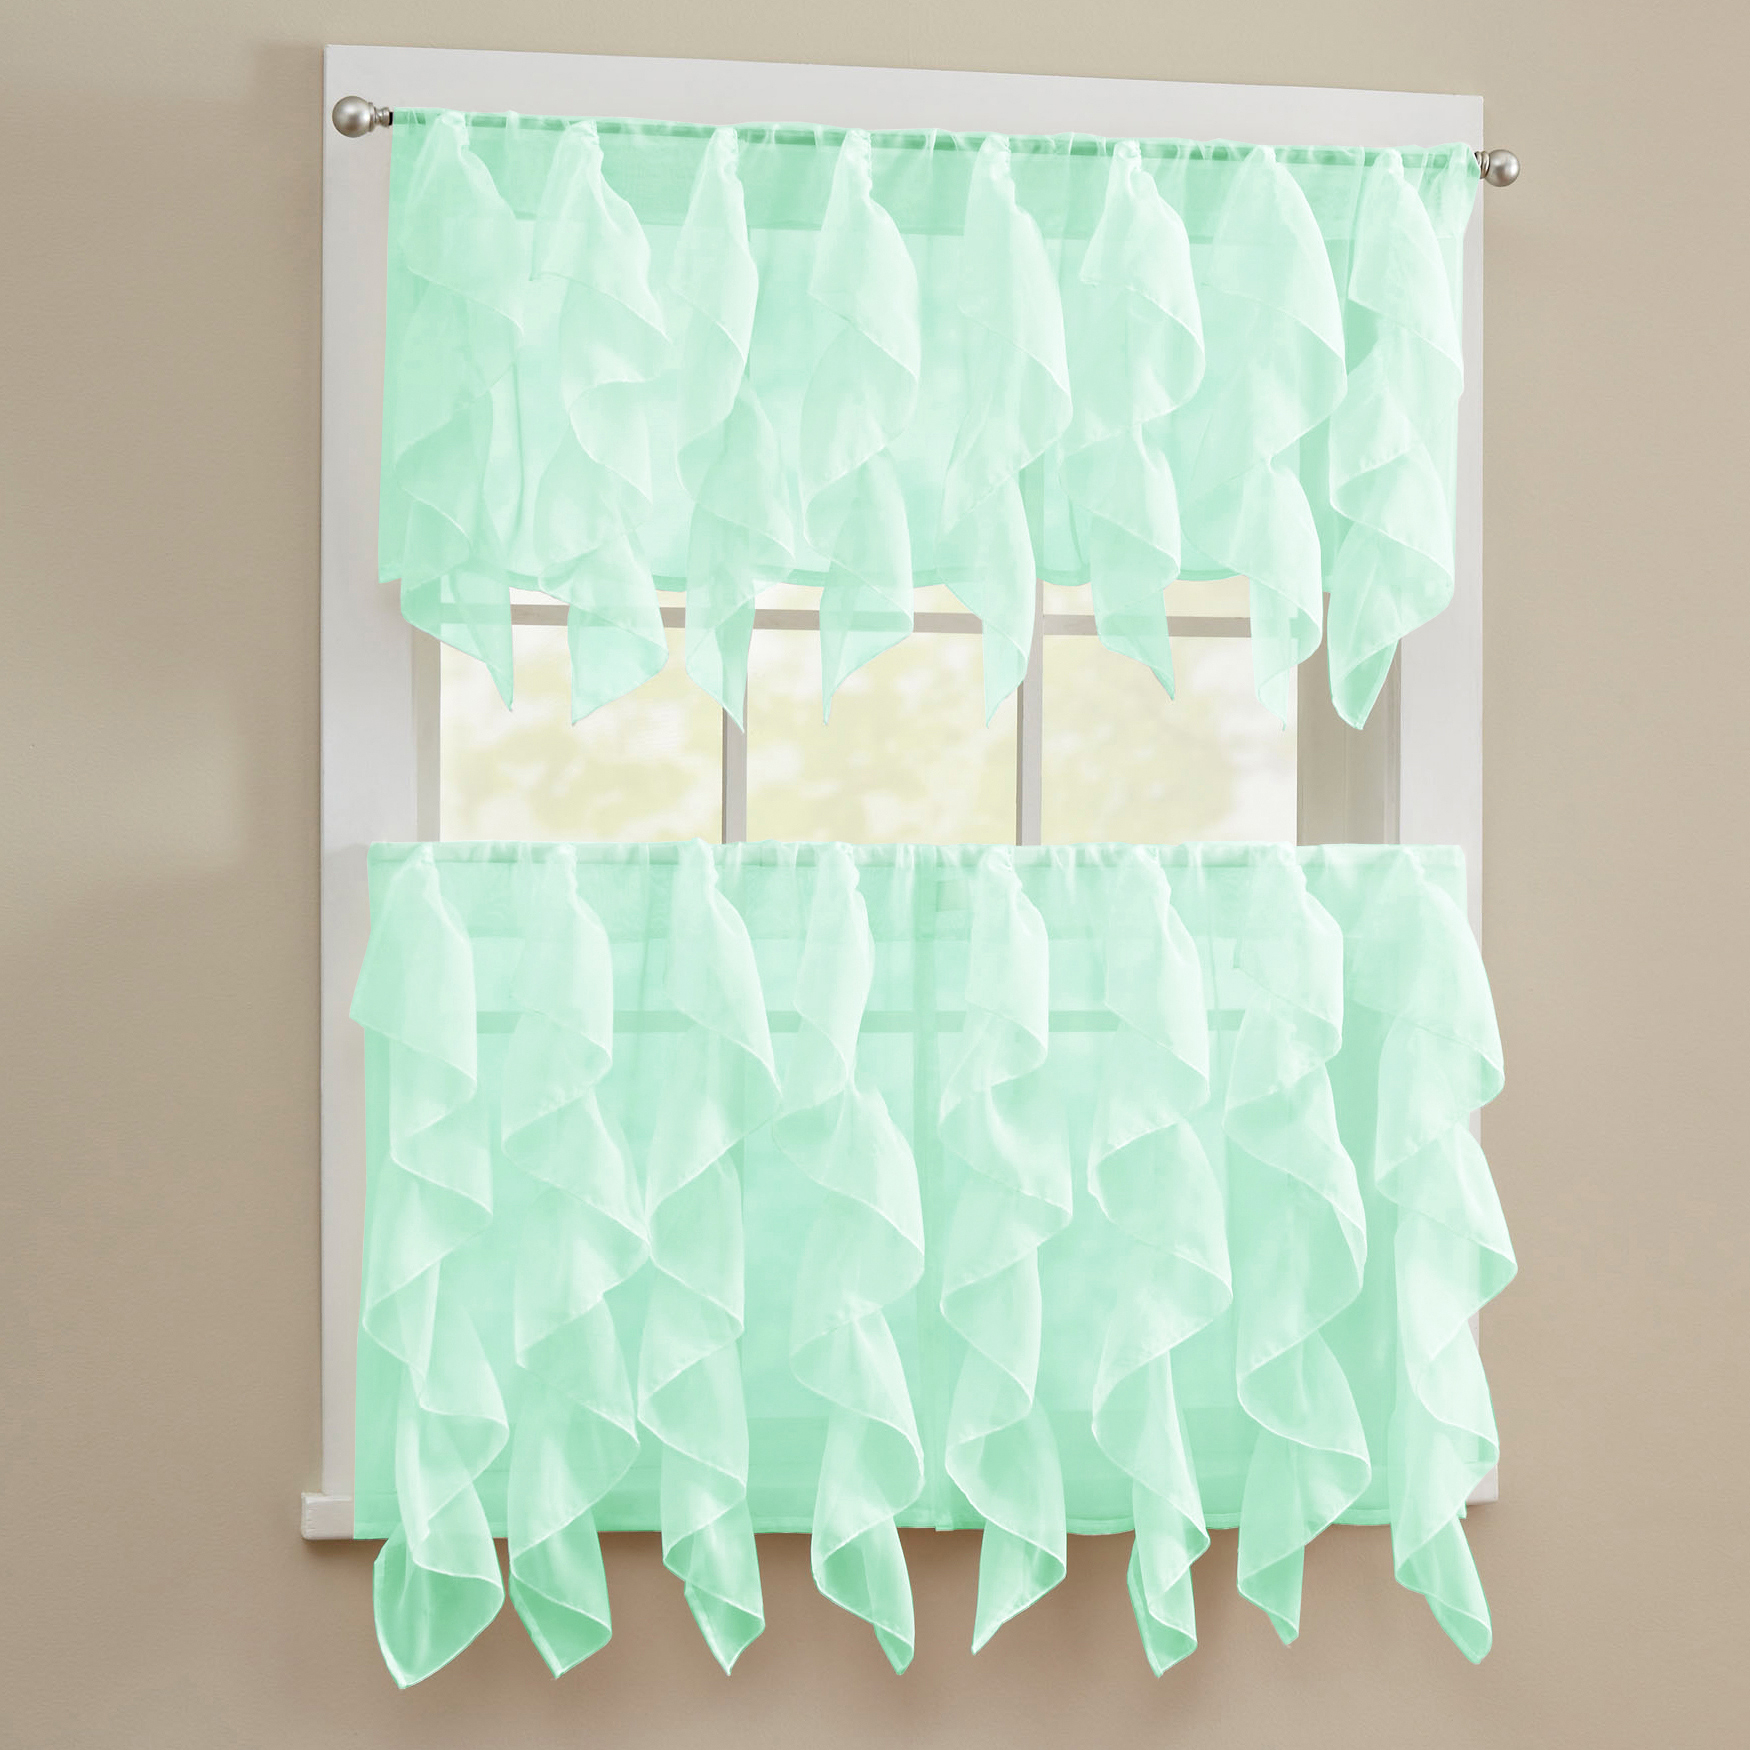 Details About Sheer Voile Vertical Ruffle Window Kitchen Curtain Tiers Or  Valance Mint with regard to Maize Vertical Ruffled Waterfall Valance and Curtain Tiers (Image 5 of 20)